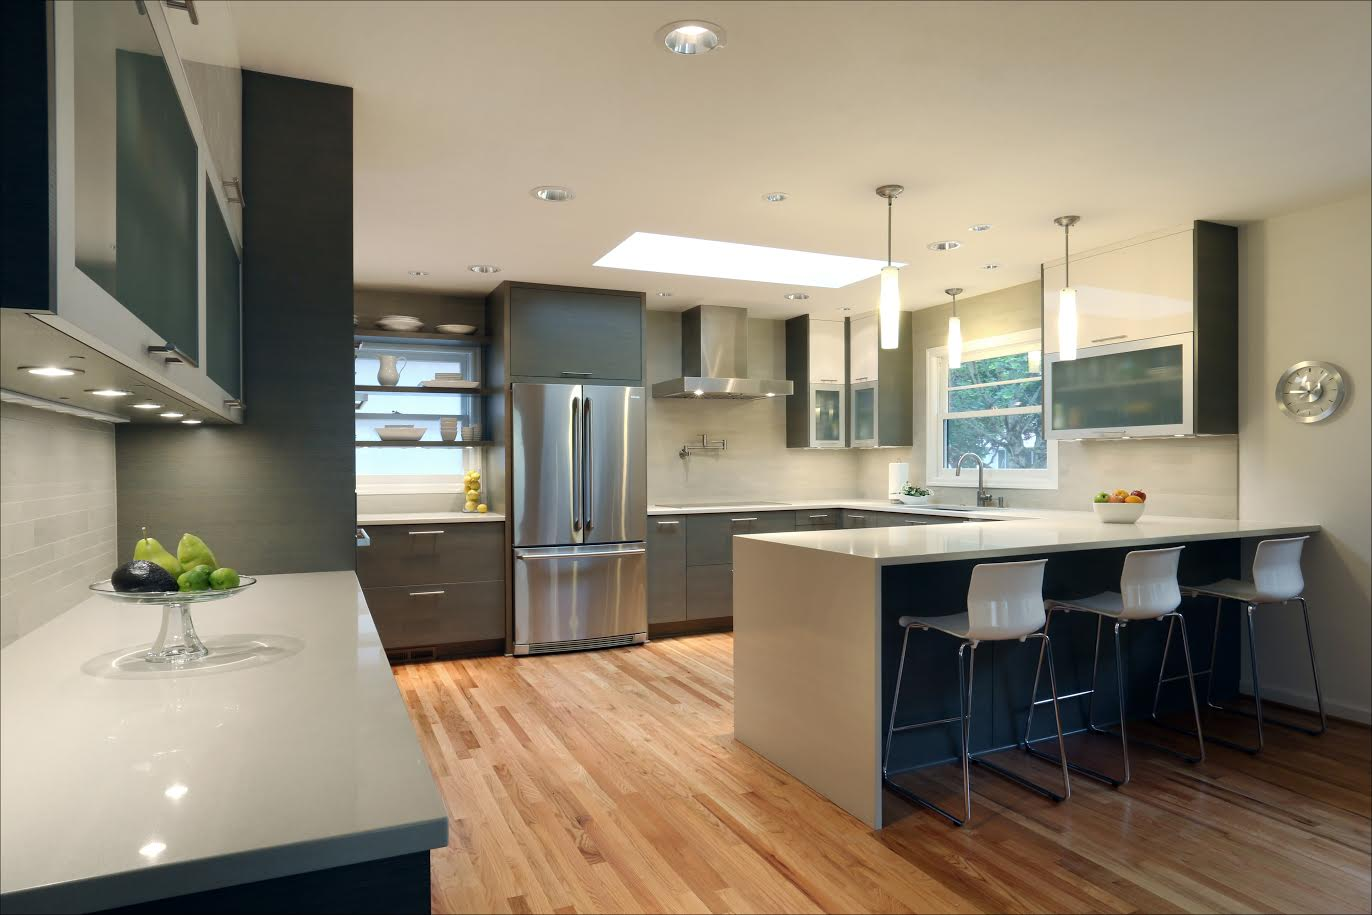 Oregon's Top Rated Local® Home Contractors Award Winner: Pacific Northwest Cabinetry